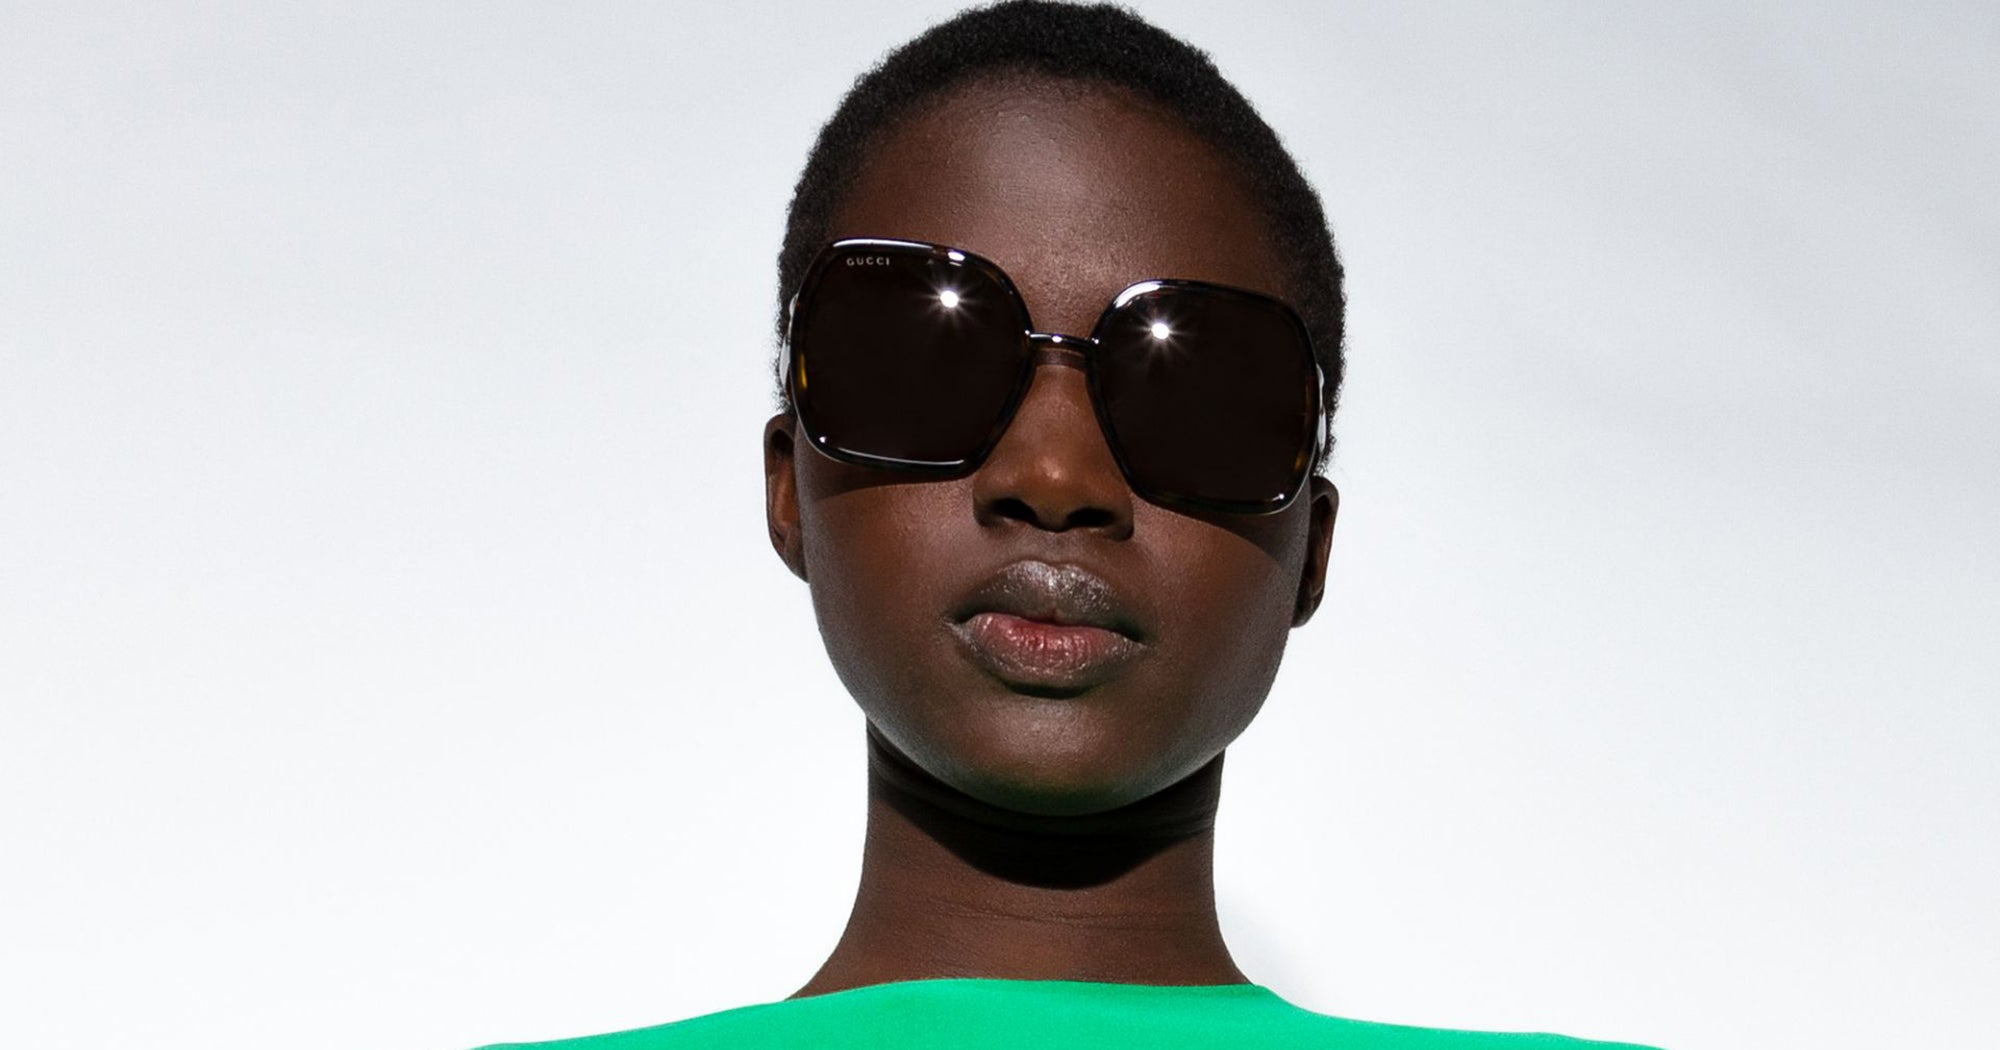 21 Pairs Of Oversized Sunglasses That Will Be BIG This Spring